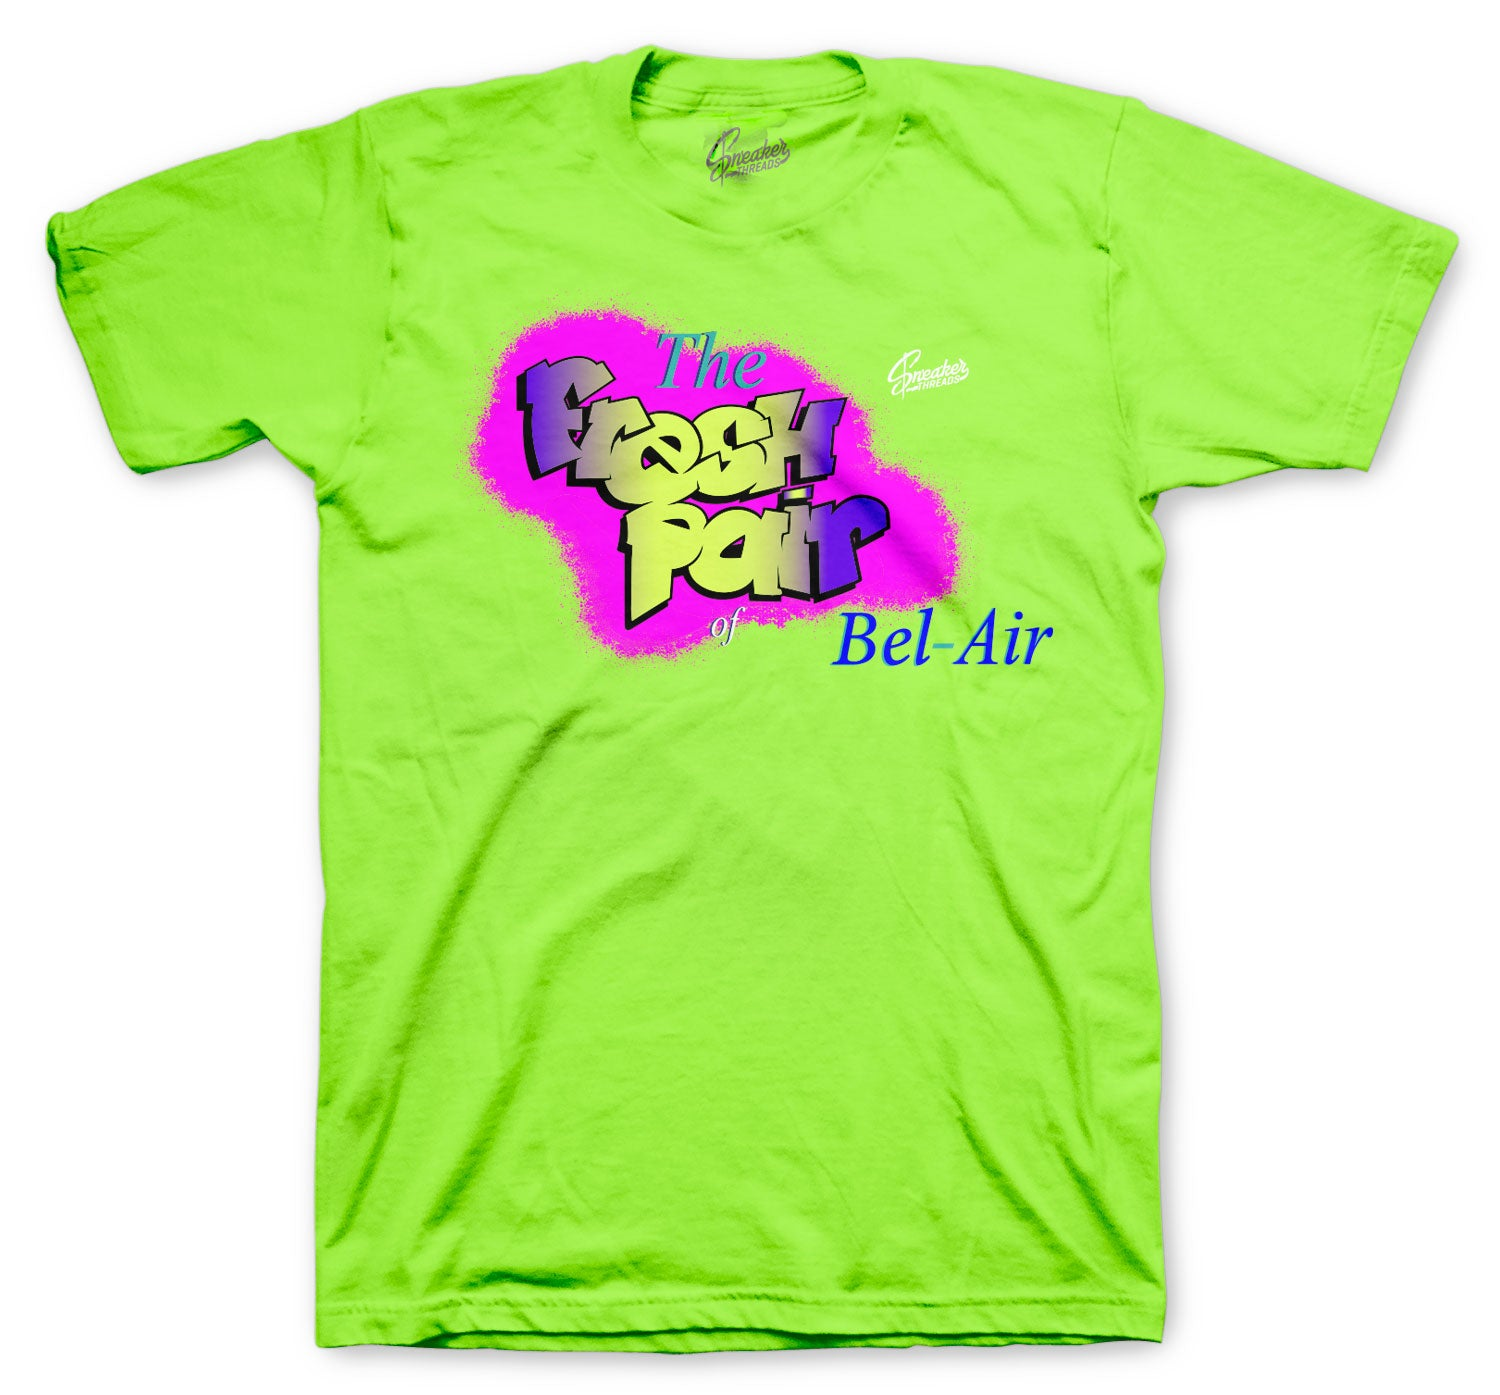 Jordan 5 Alternate Bel Air Fresh Air Shirt